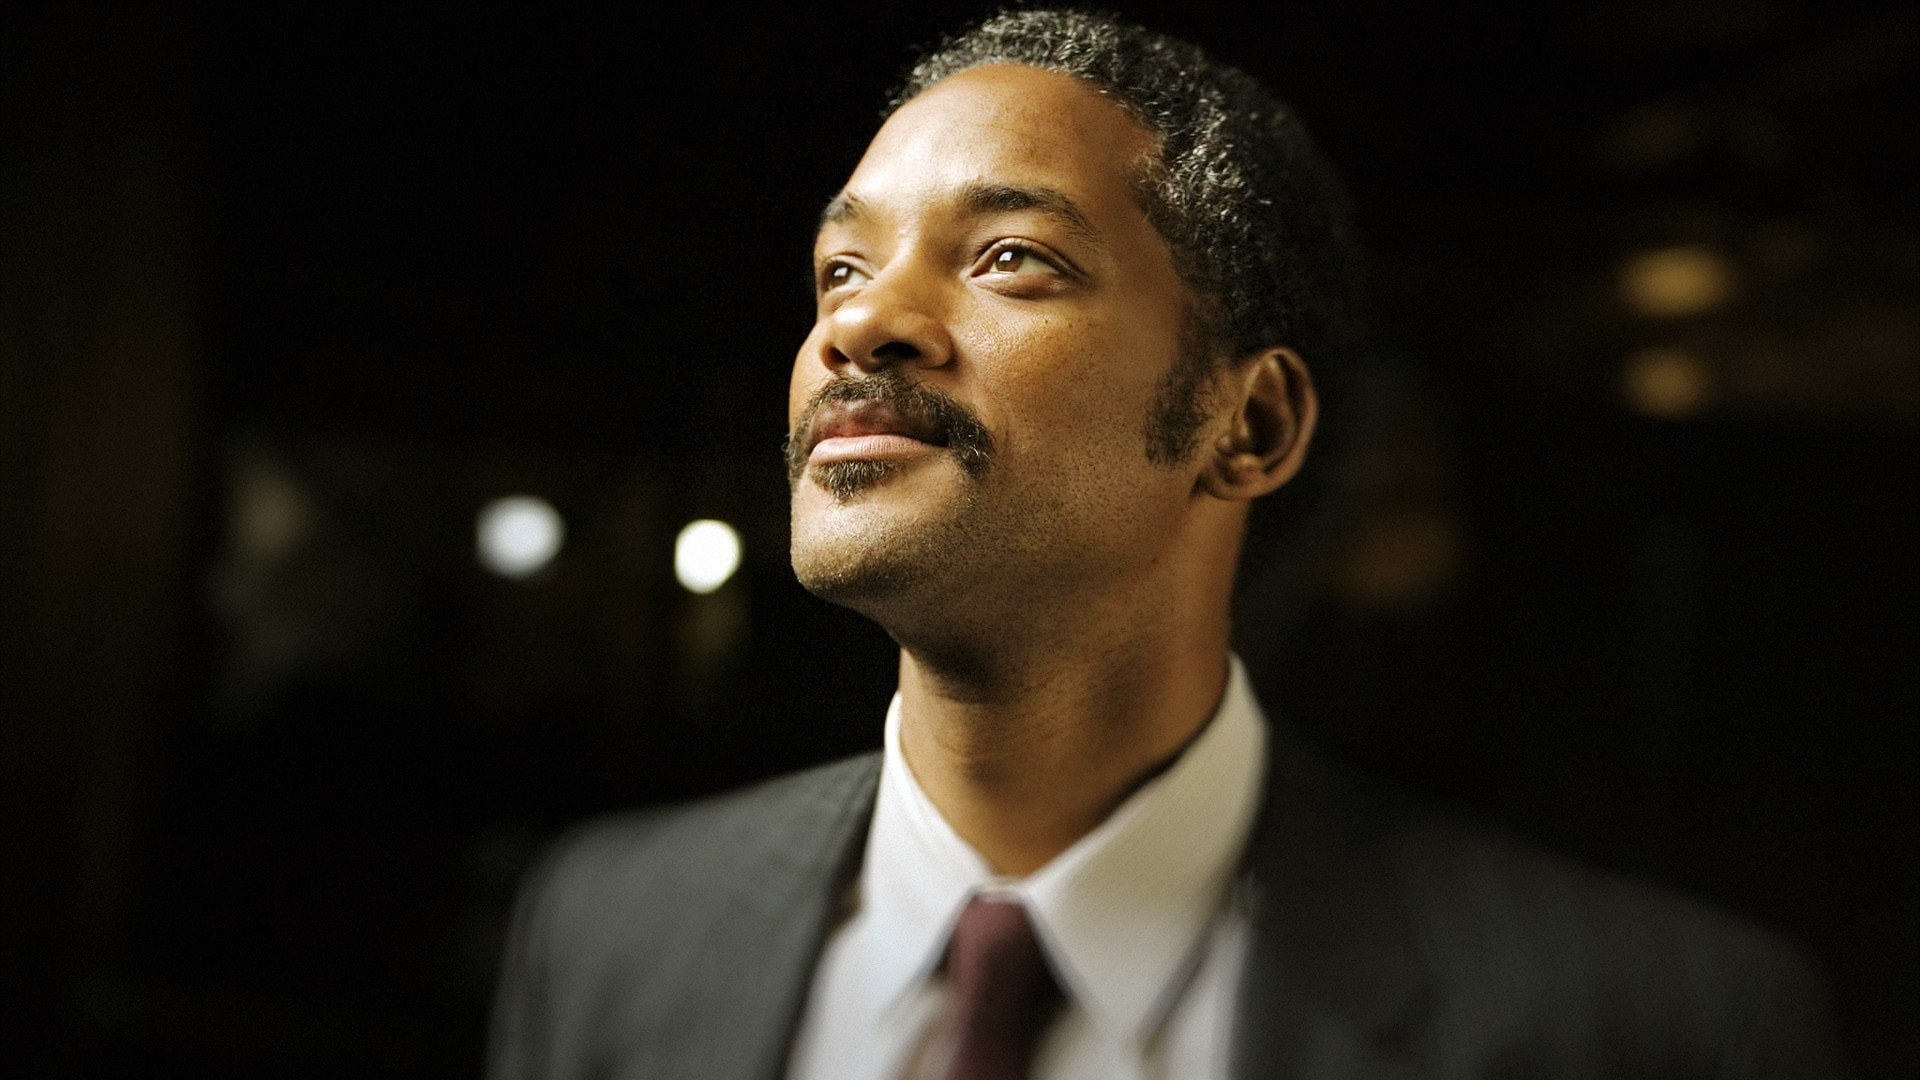 1920x1080 - Will Smith Wallpapers 34